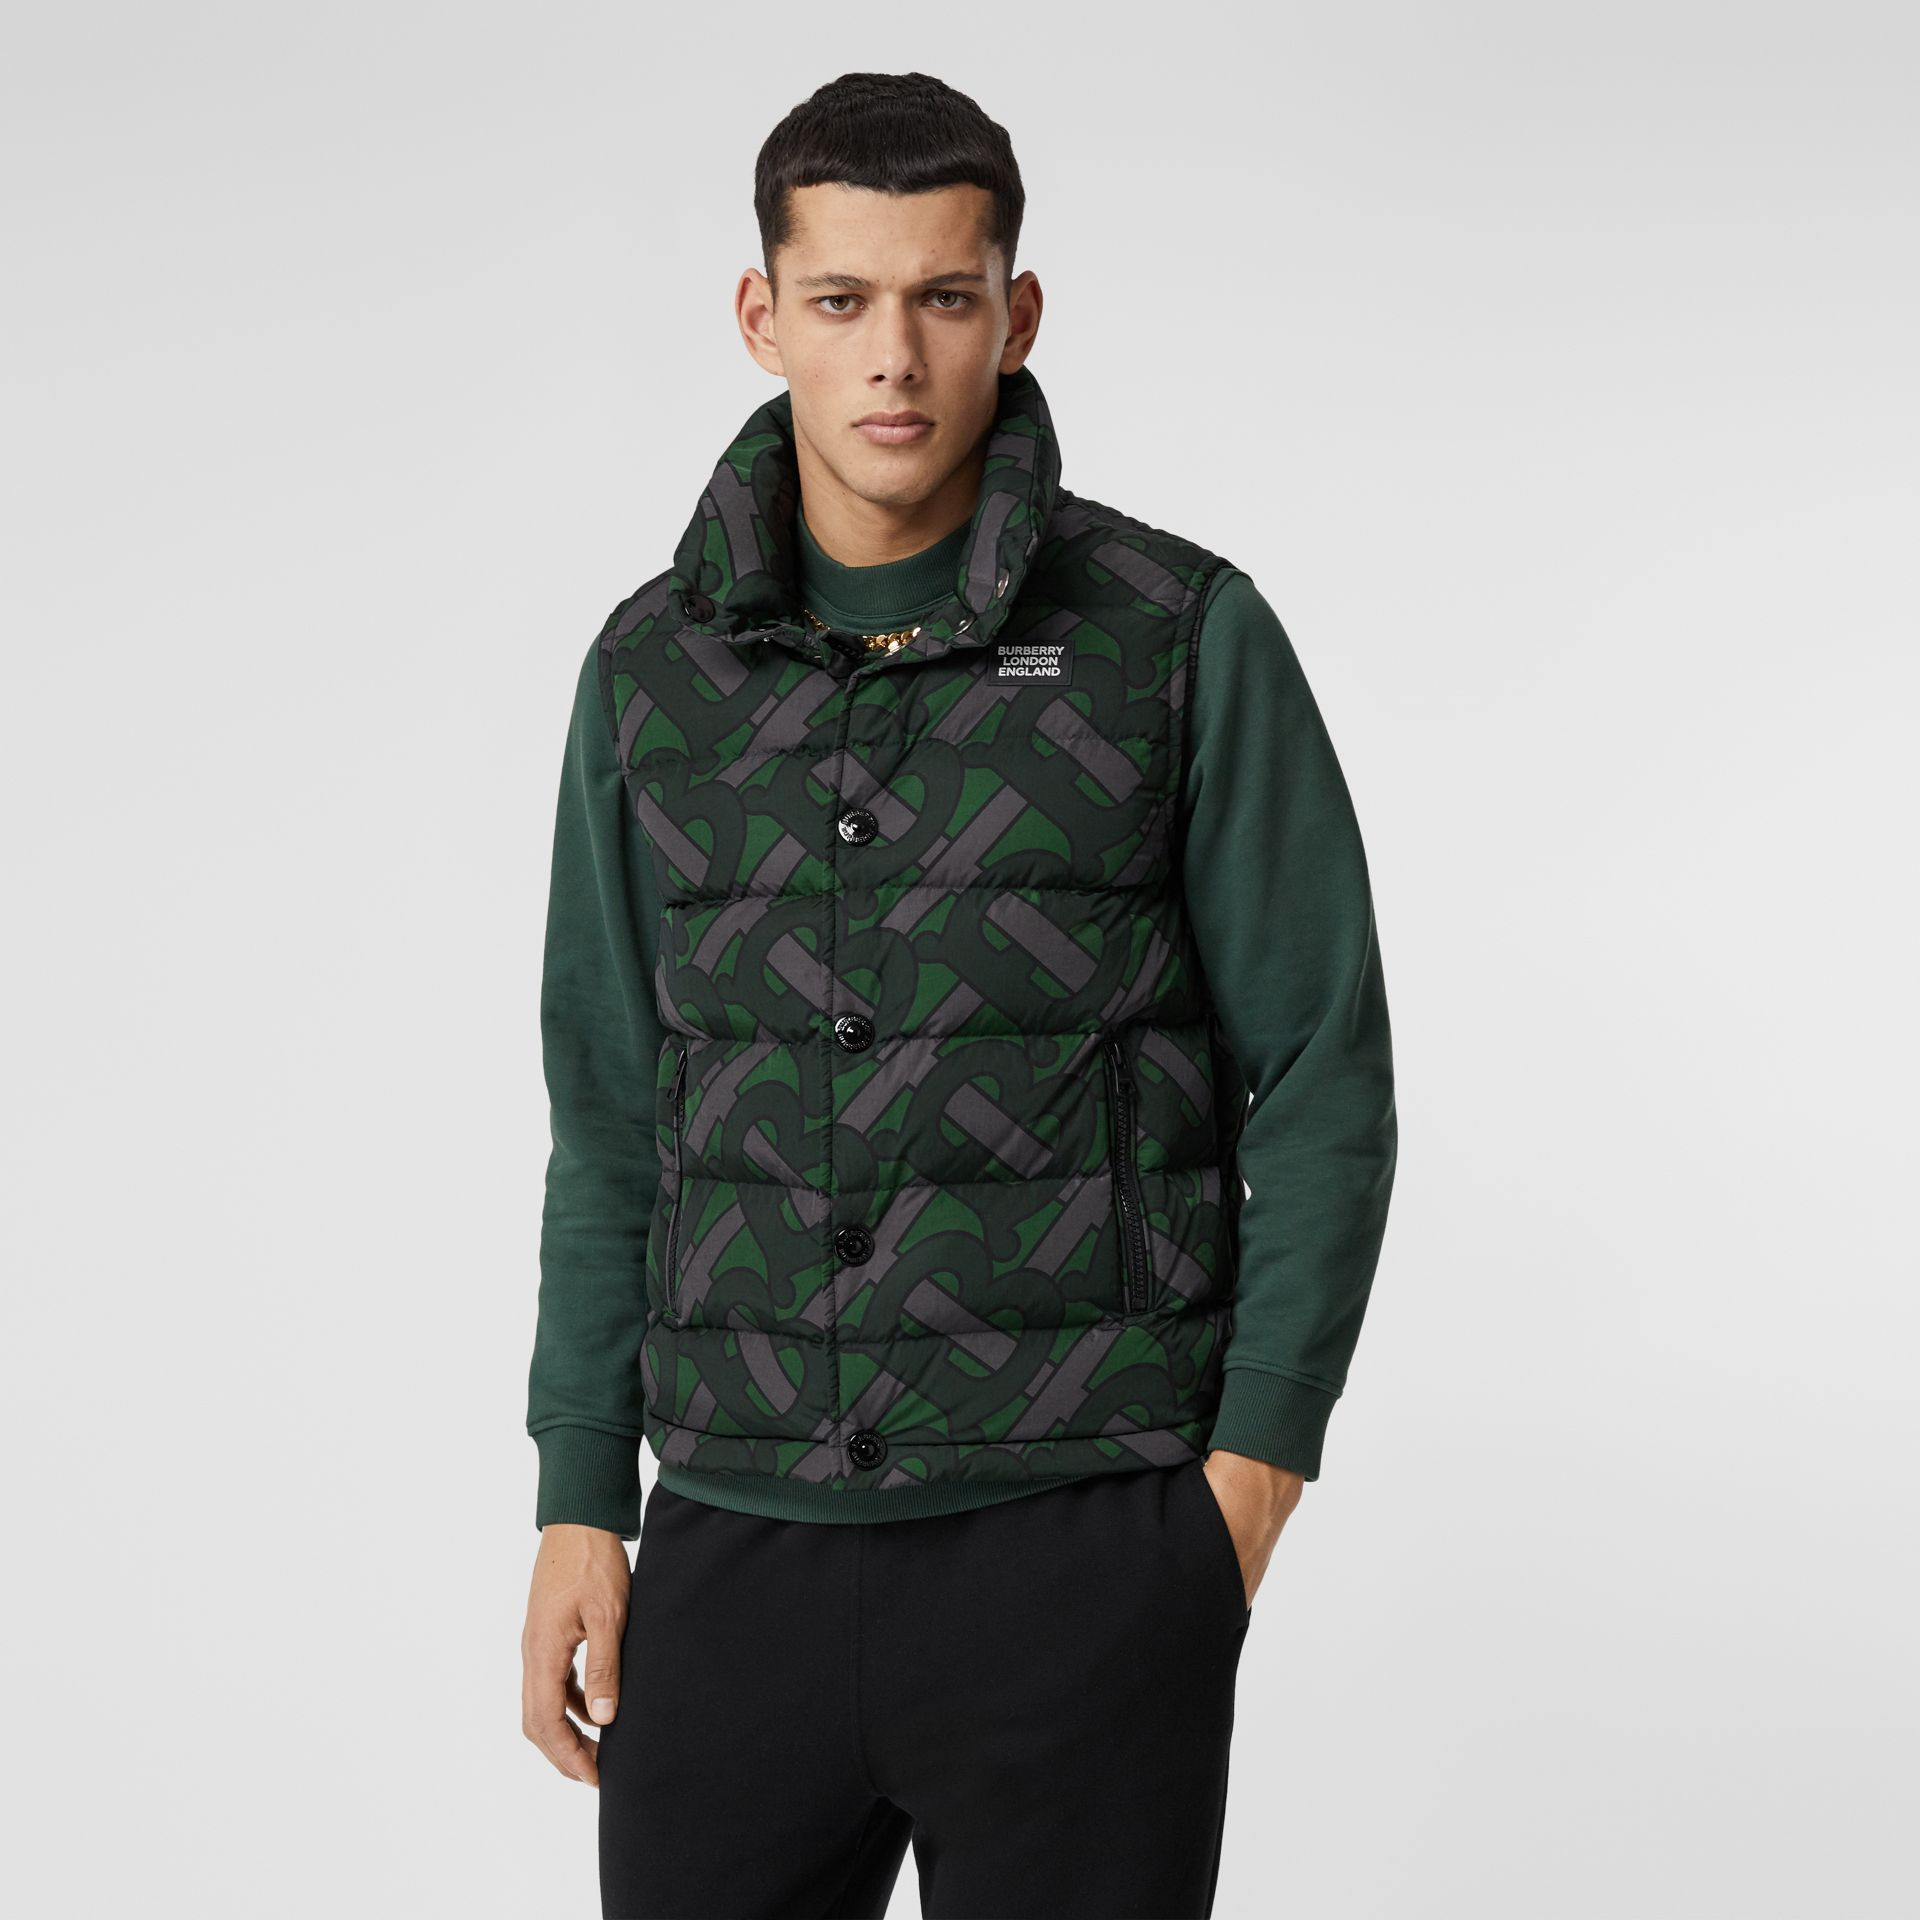 Monogram Print Puffer Gilet in Forest Green | Burberry - gallery image 6